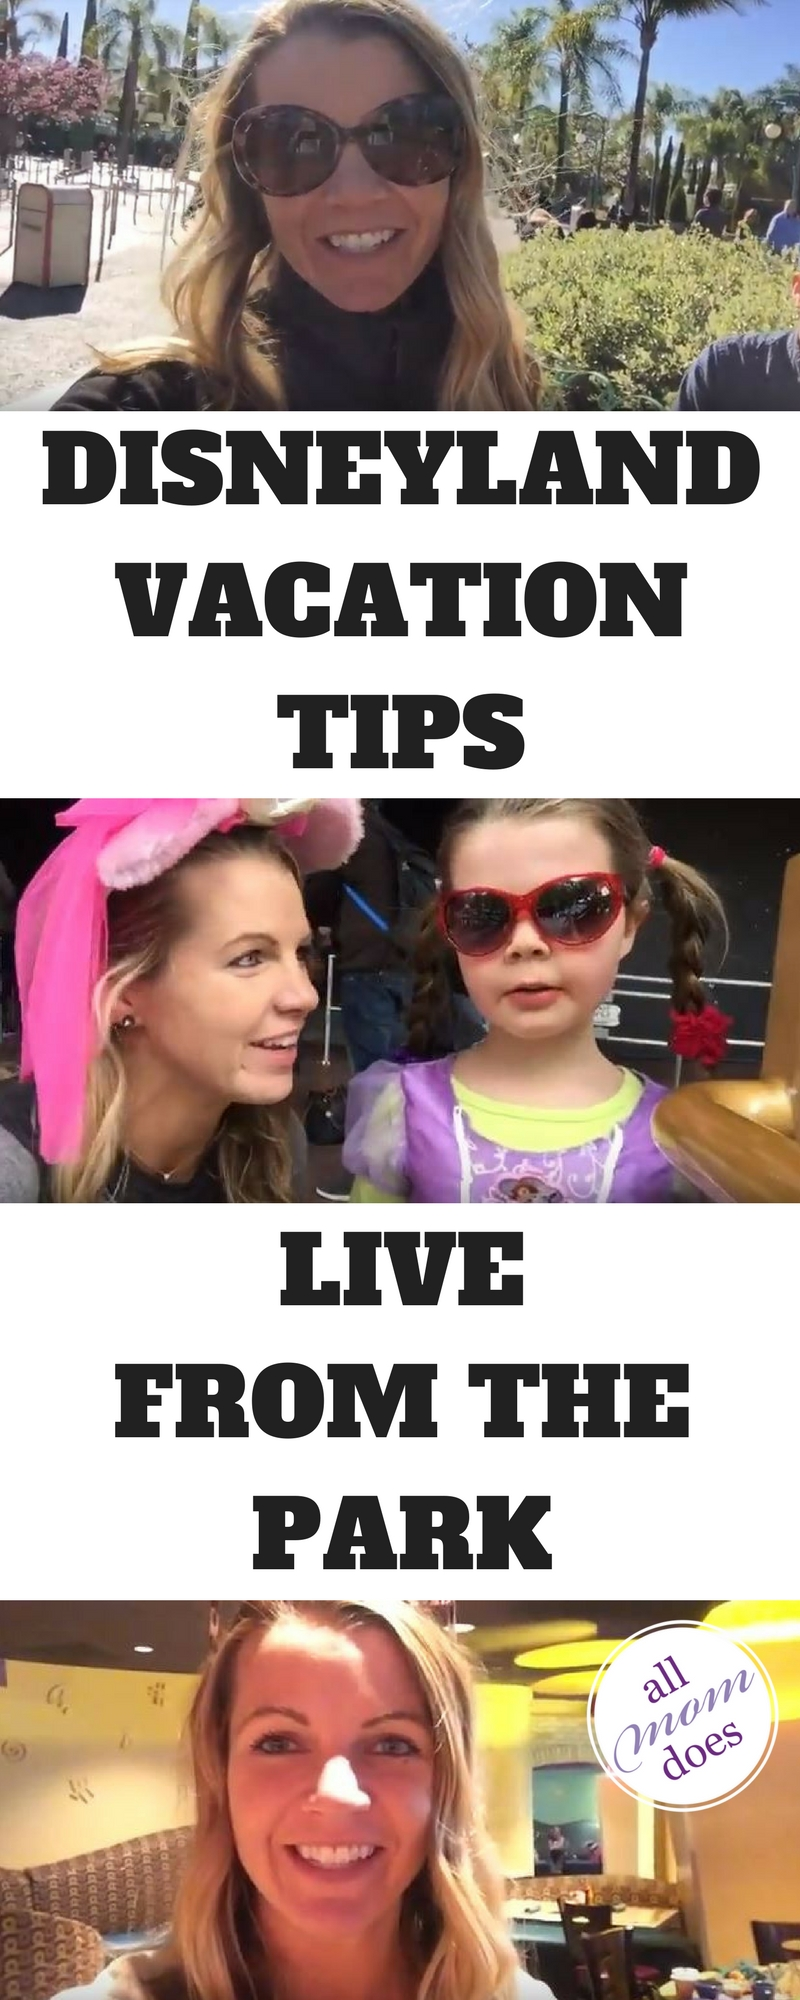 Disneyland Vacation Tips - Video from inside the park. #disneyland #vacation